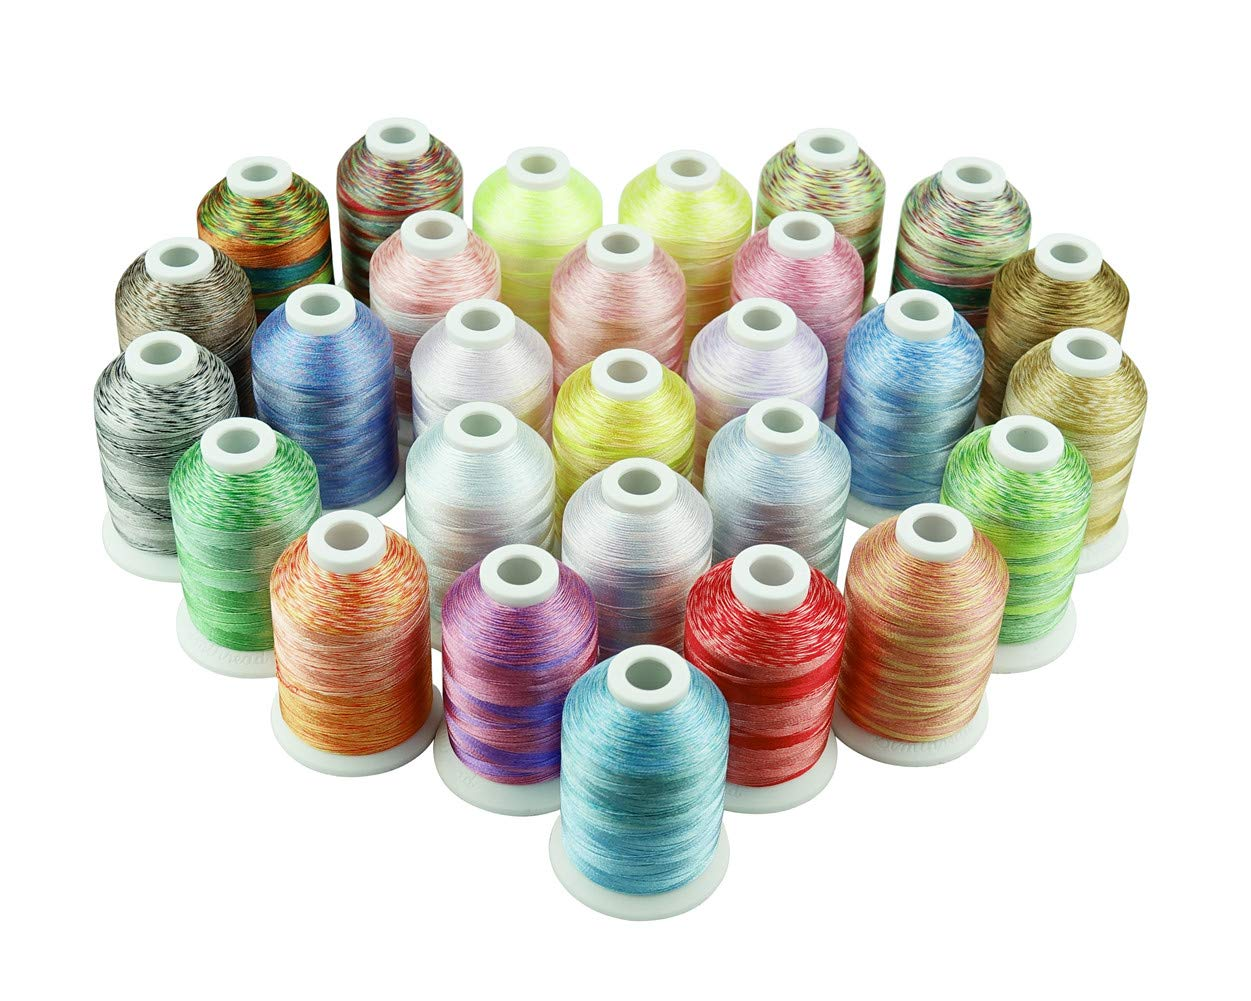 Simthreads 28 Variegated Color Embroidery Machine Thread 1100 Yards Each for Janome Brother Pfaff Babylock Singer Bernina Husqvaran and Most Sewing Embroidery Machines by Simthreads